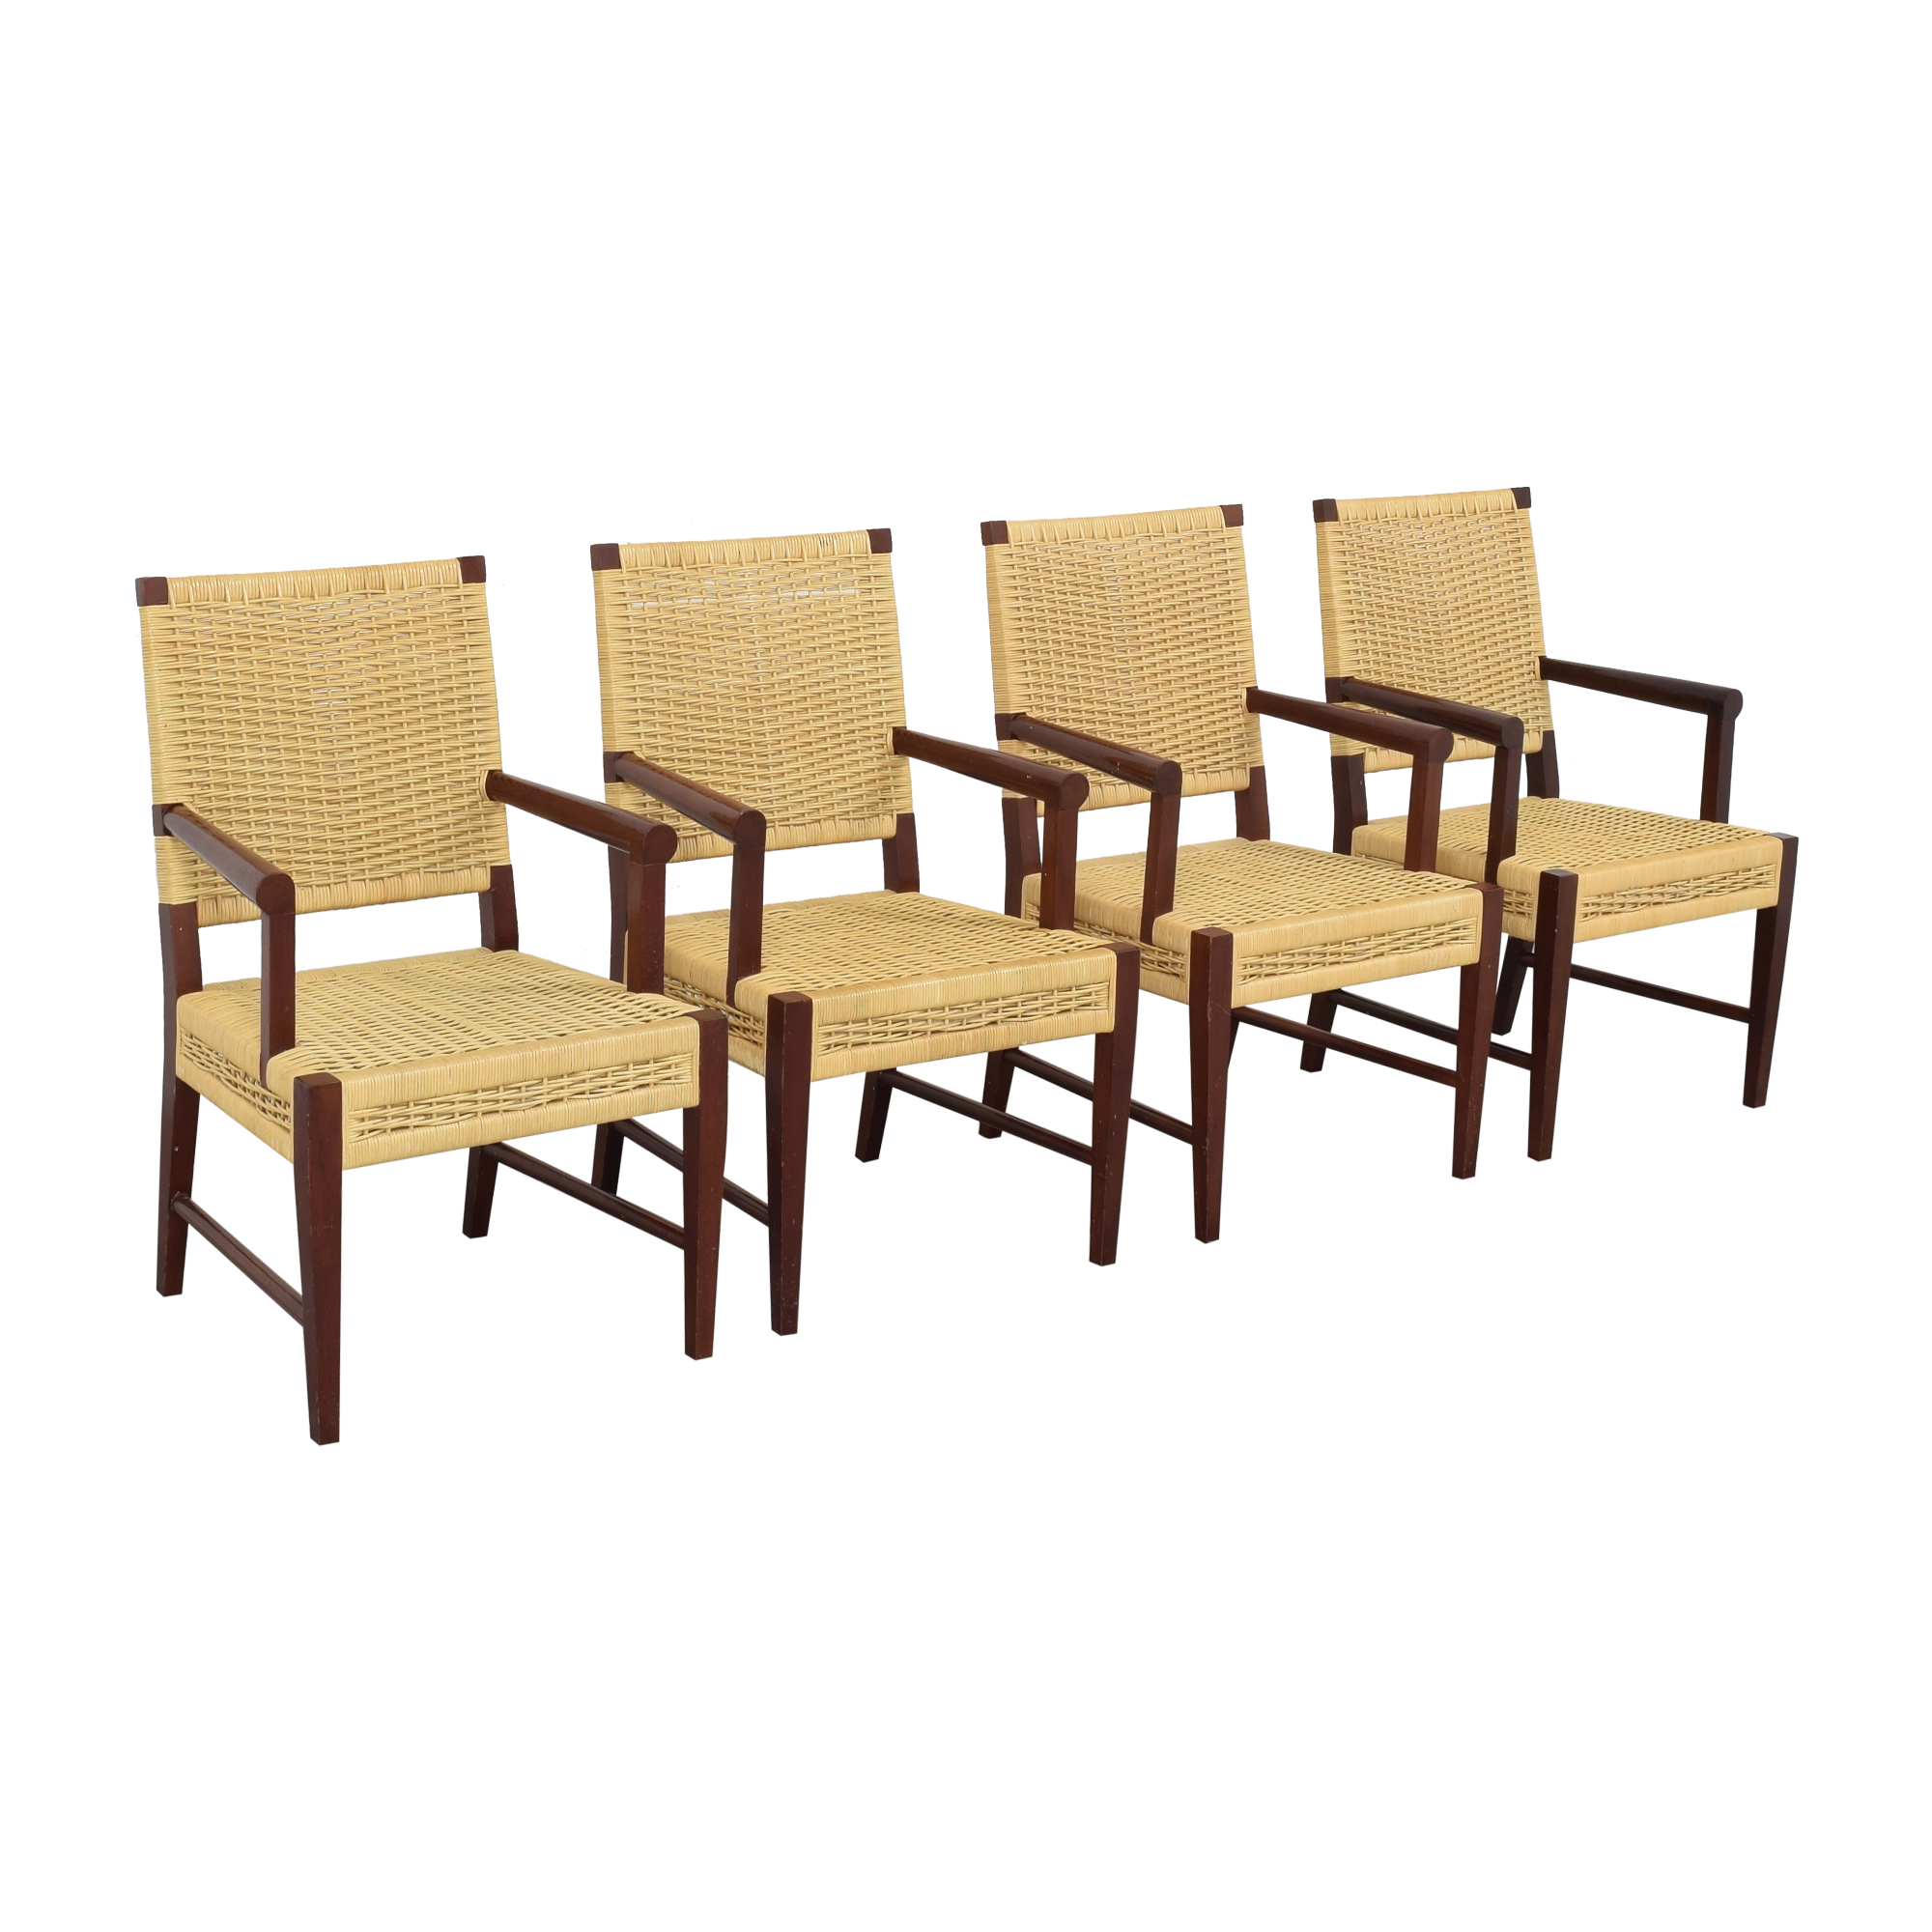 Donghia Donghia Dining Chairs in Merbau Wood with Raffia Weaving pa